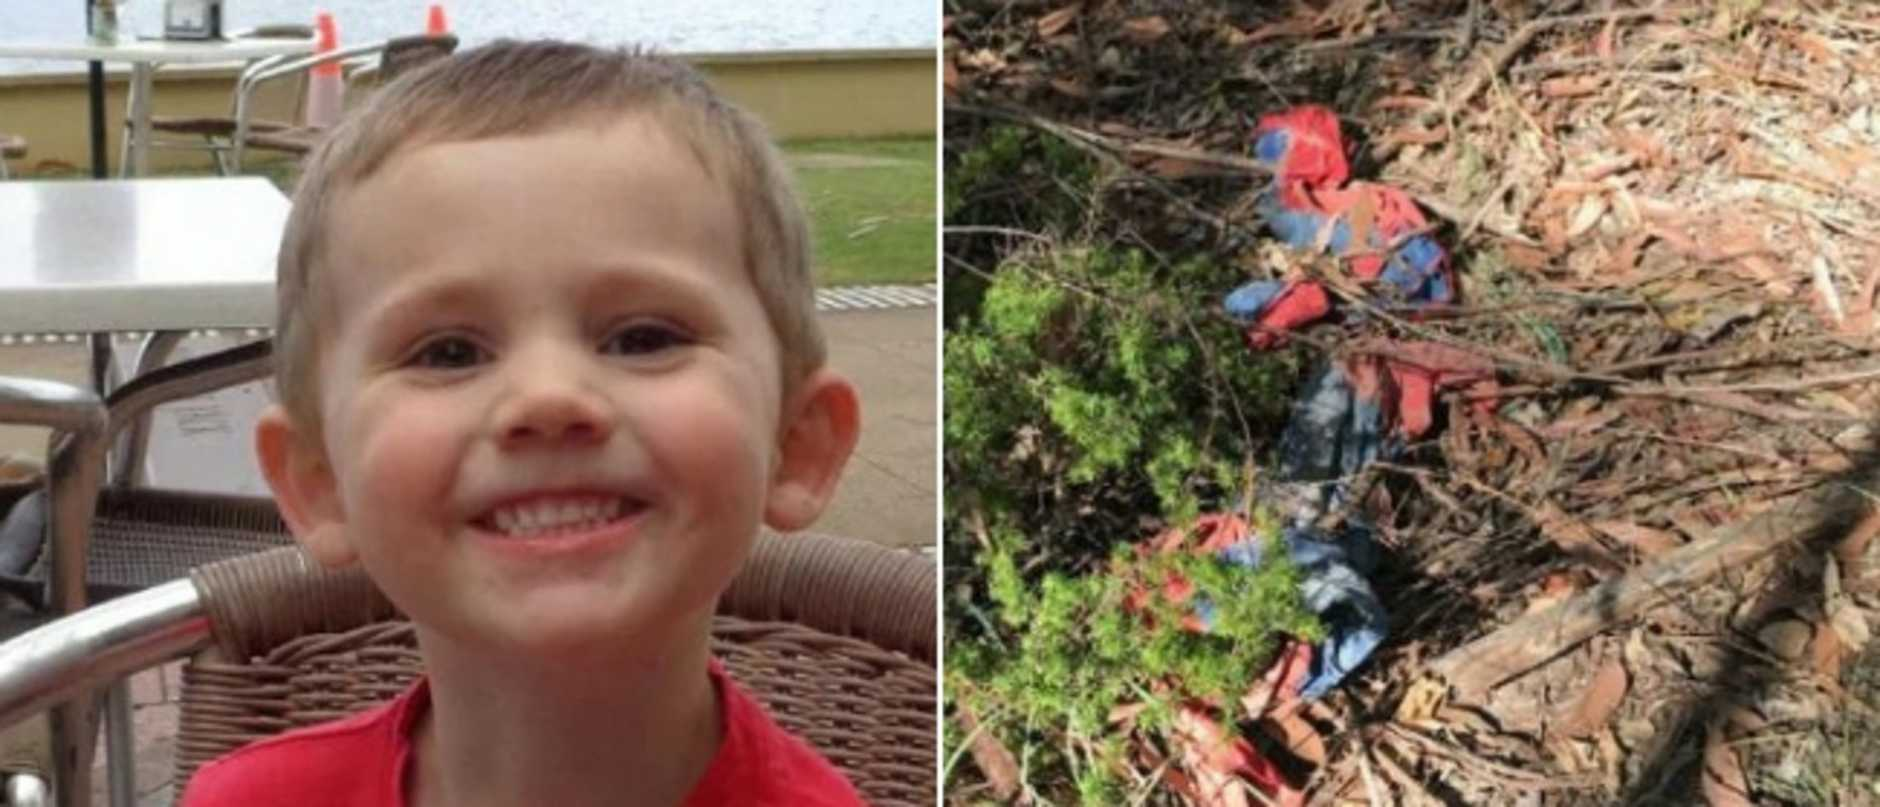 Documents detailing the investigation into William Tyrrell's disappearance have been released for the first time.